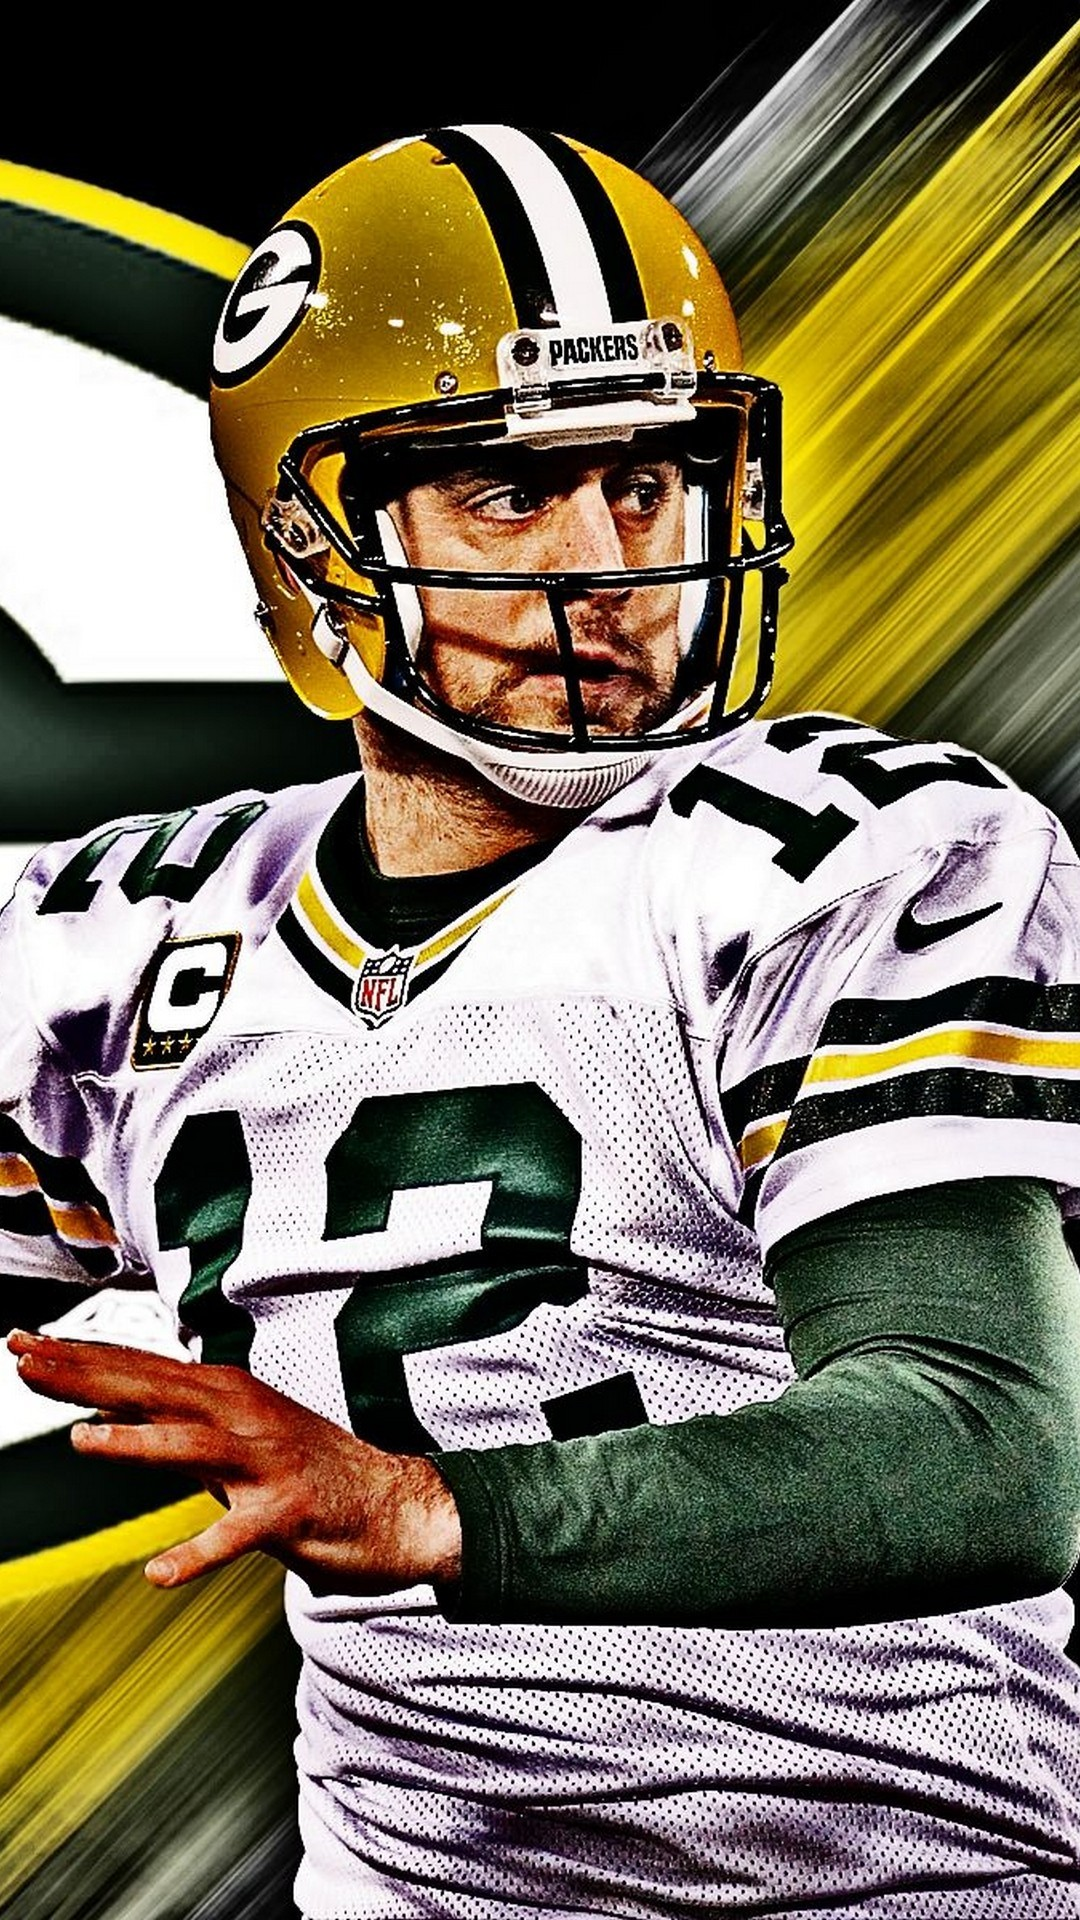 Aaron Rodgers hd wallpaper for iphone